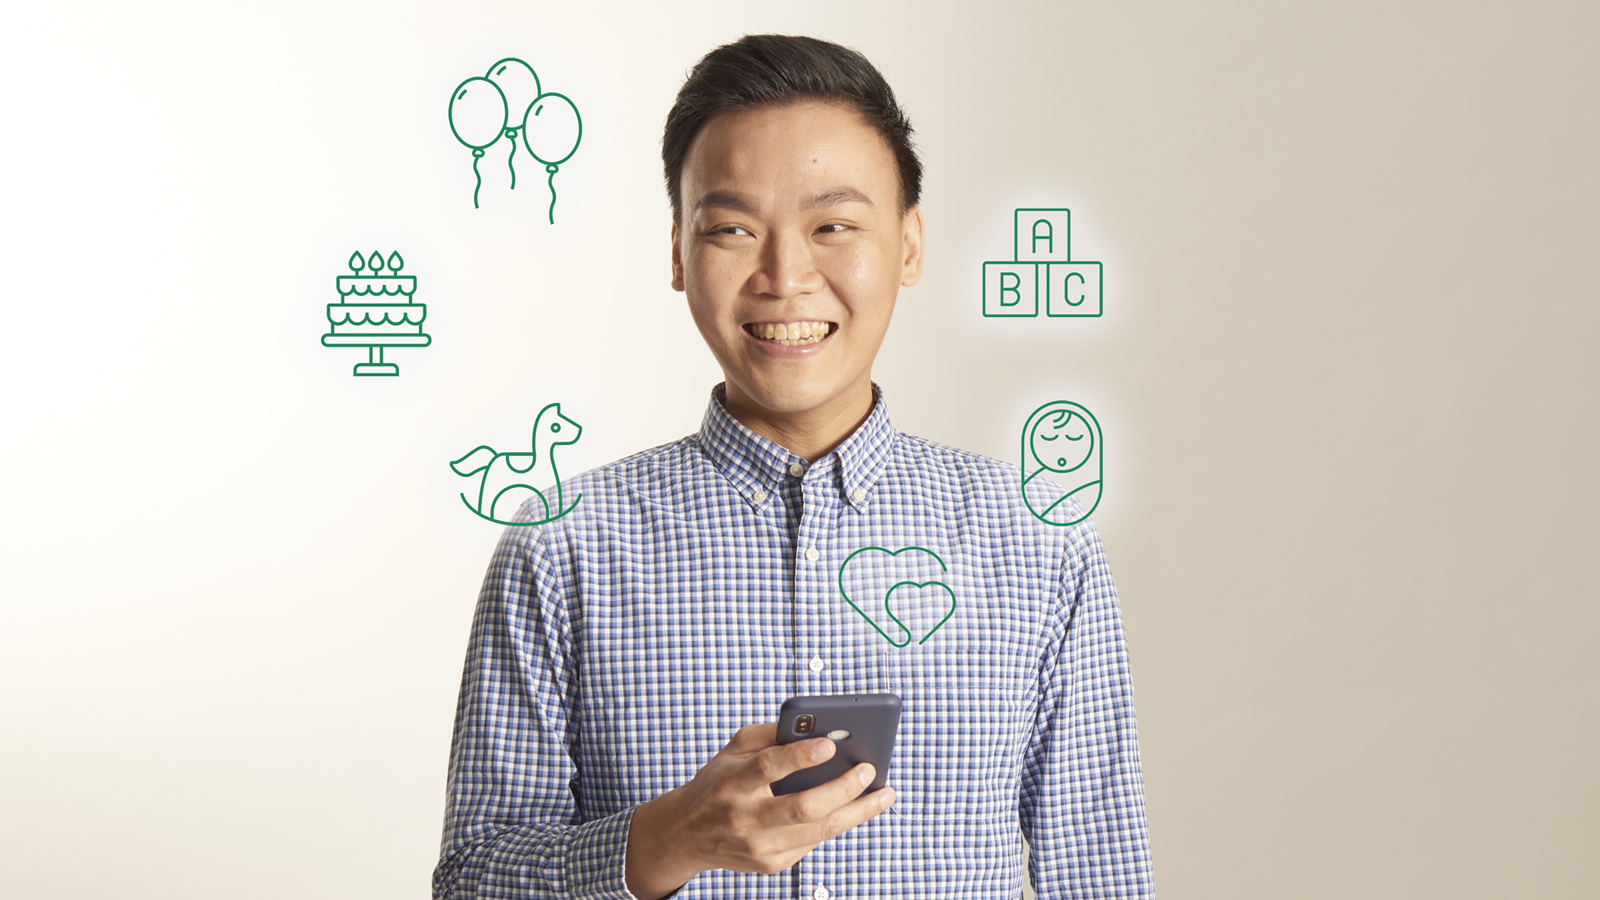 Mr Hoon Ding Yi, a software engineer, worked on the Moments of Life (Families) app